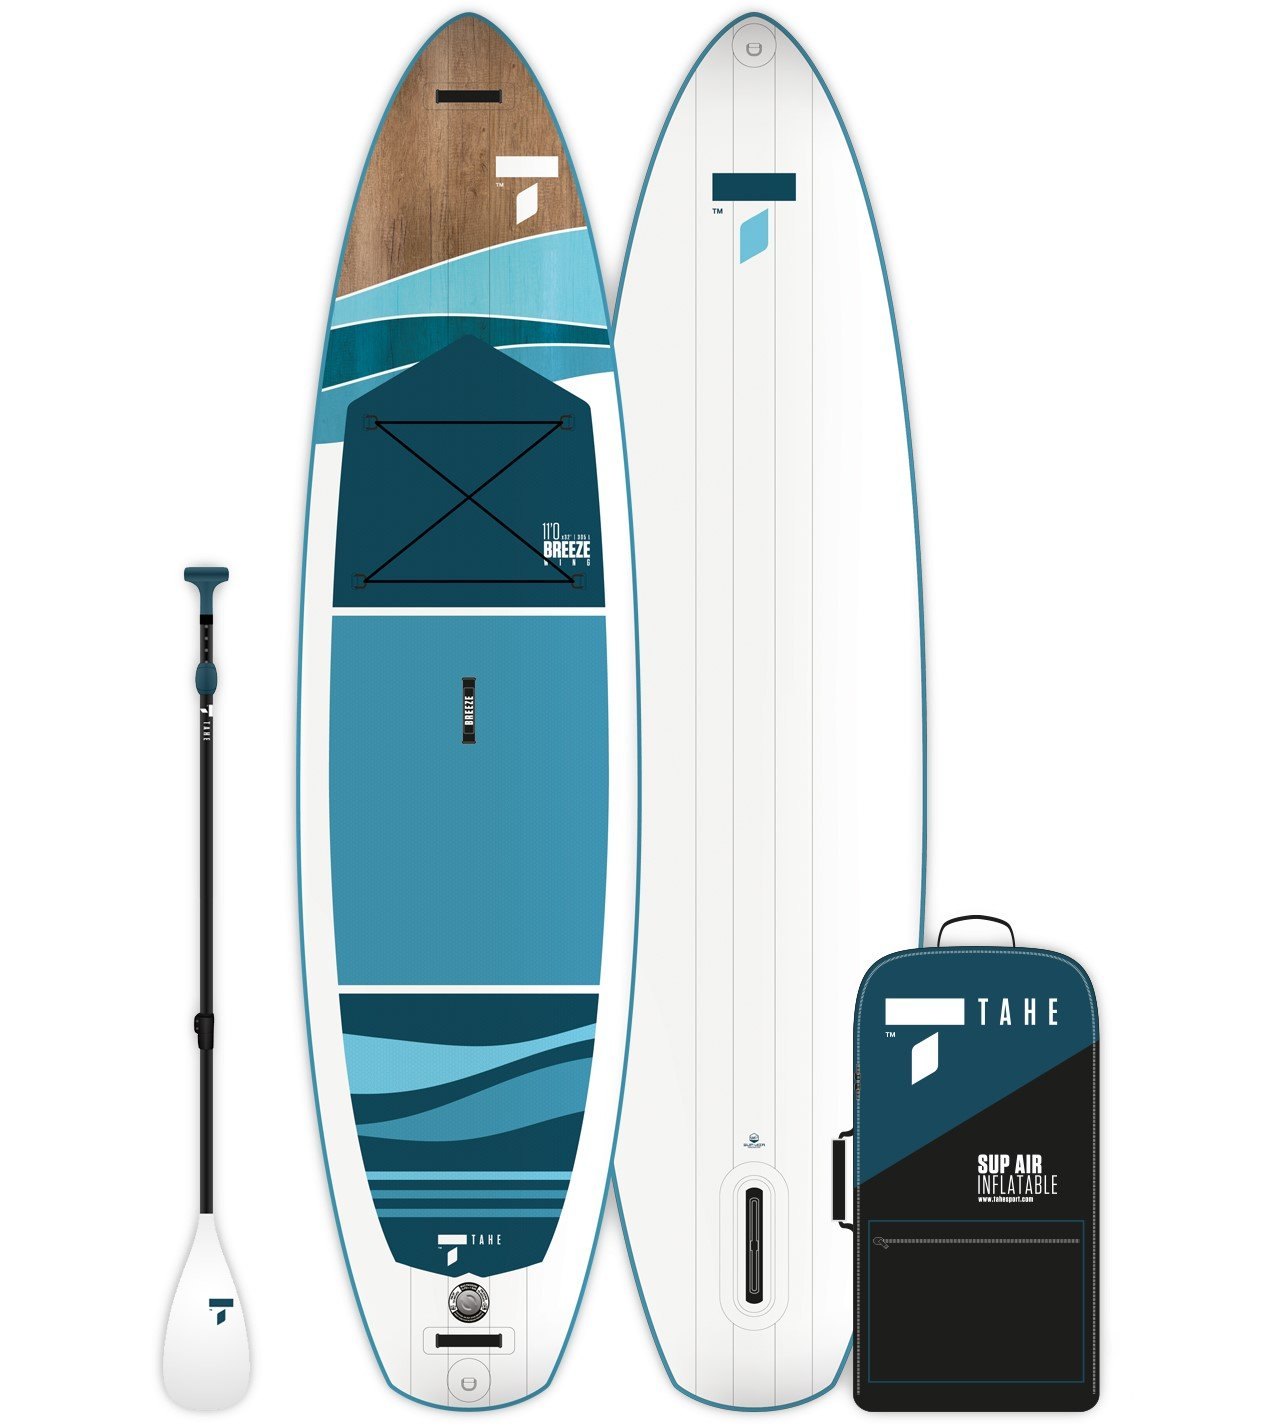 Tahe Breeze Wing 11'0 Inflatable Stand Up Paddleboard Package